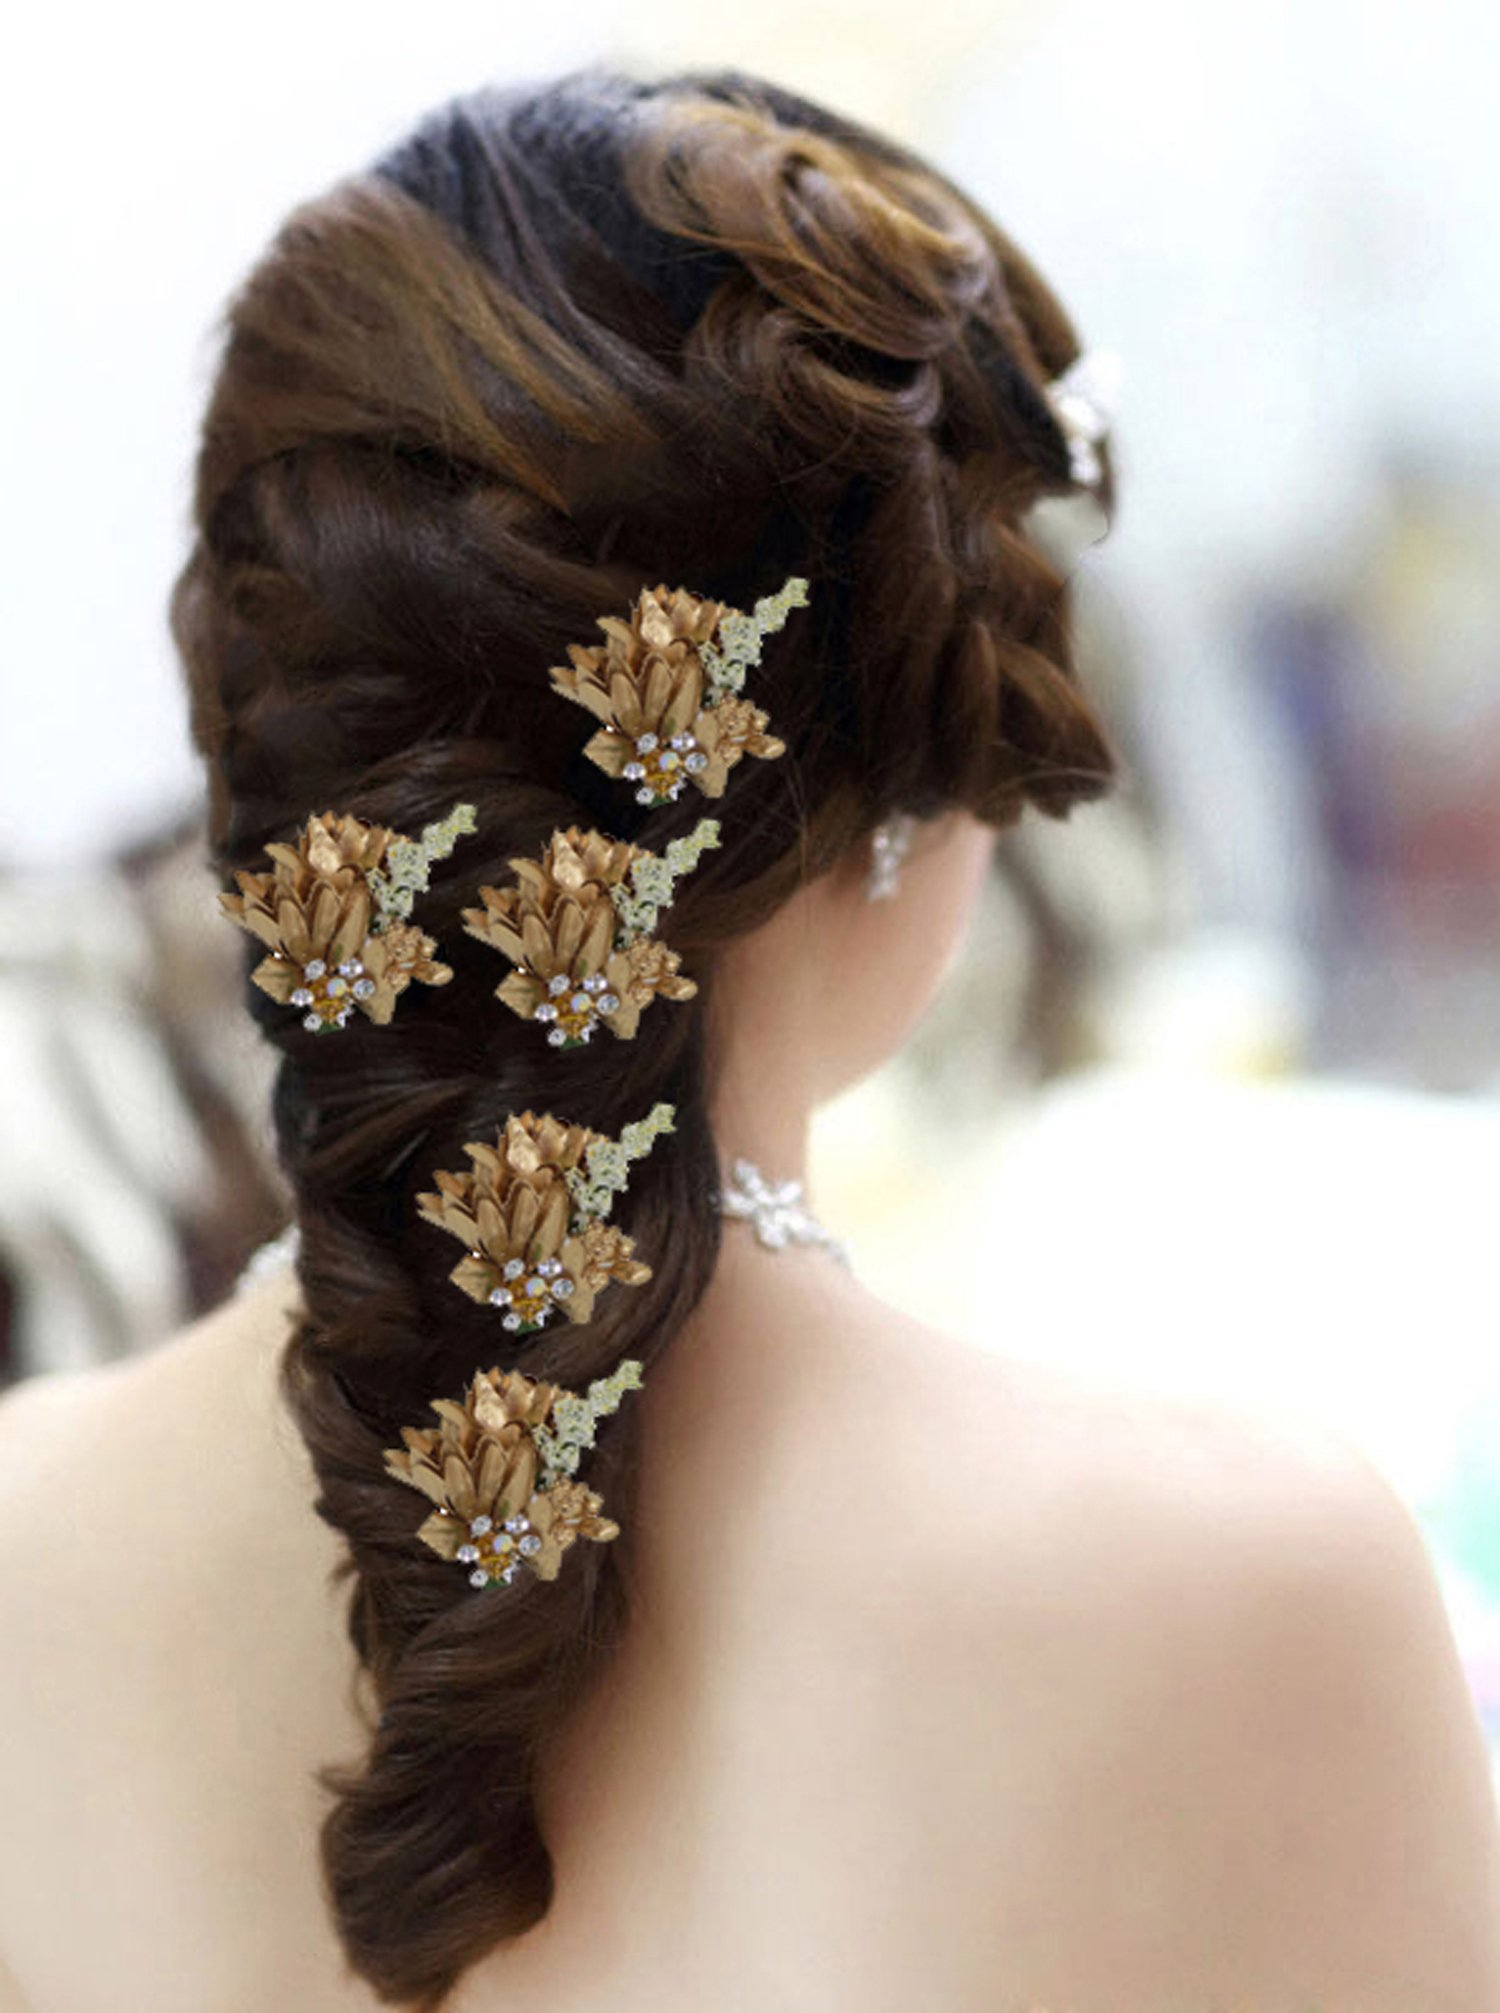 Kabello Hair Accessories Flowers Hair Juda Pins Juda Pins For Women And Girls Wedding And Party Wear Golden 5 Grams Pack Of 5